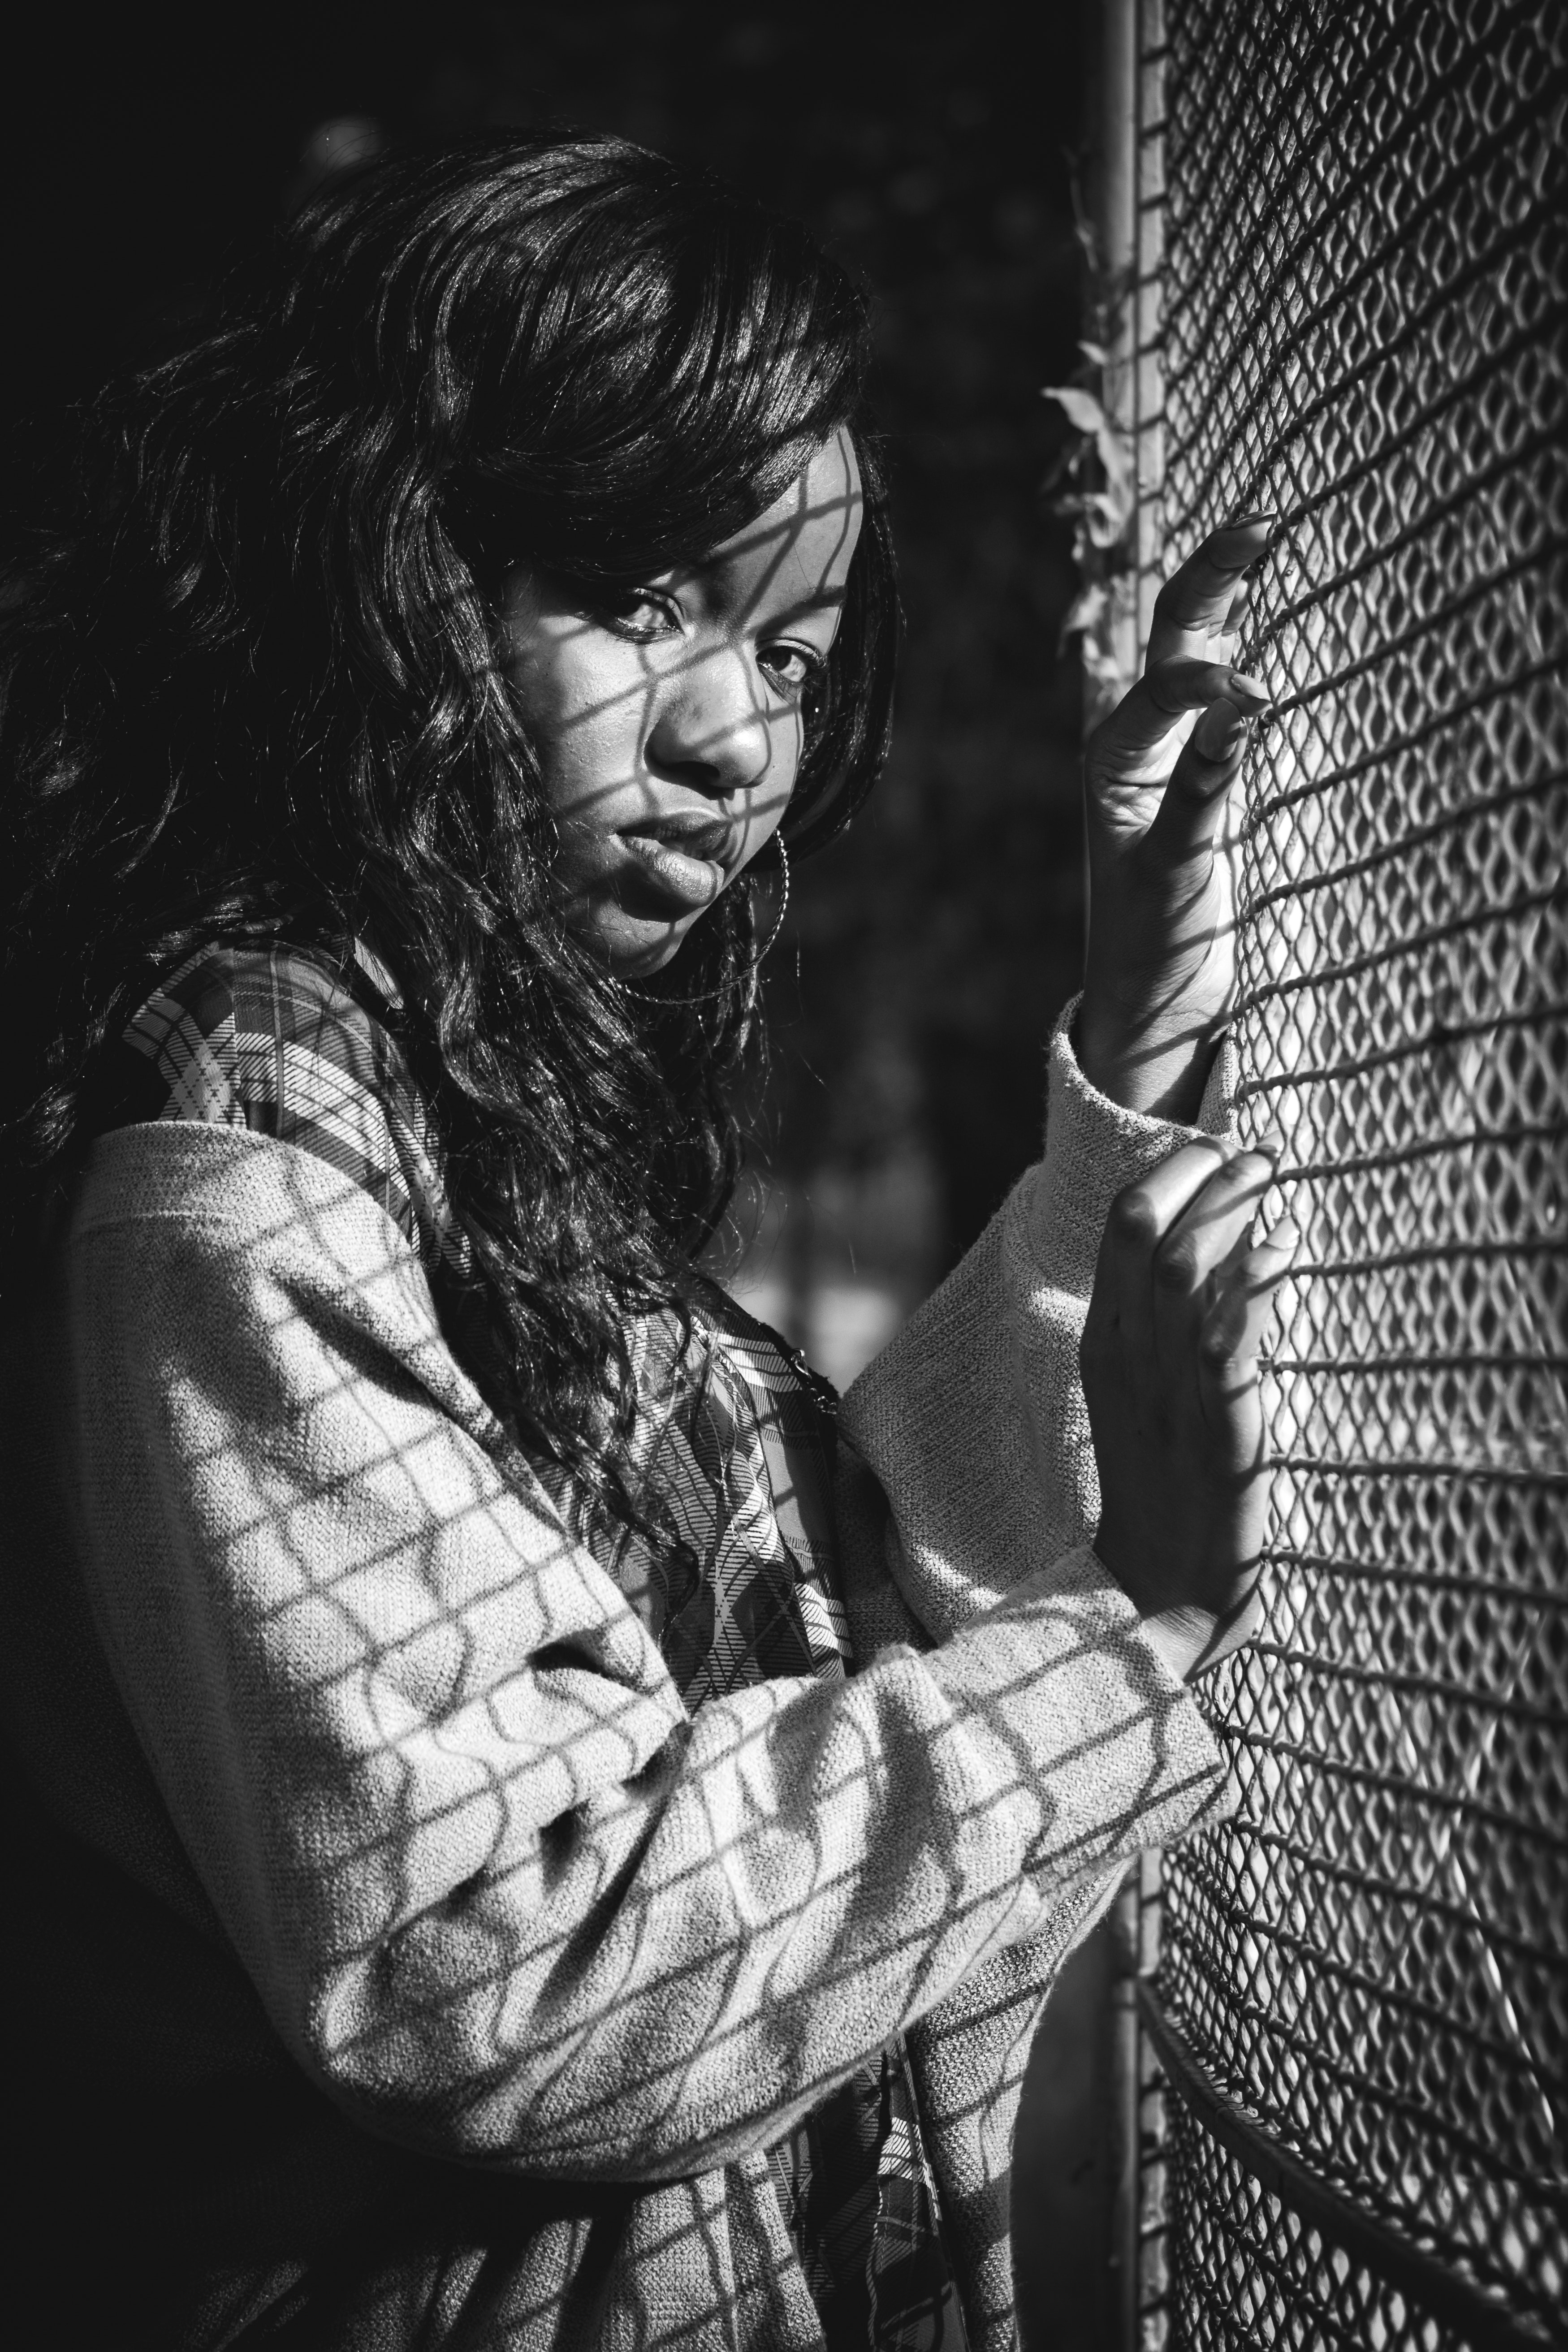 Grey scale photography of woman standing against mesh grill